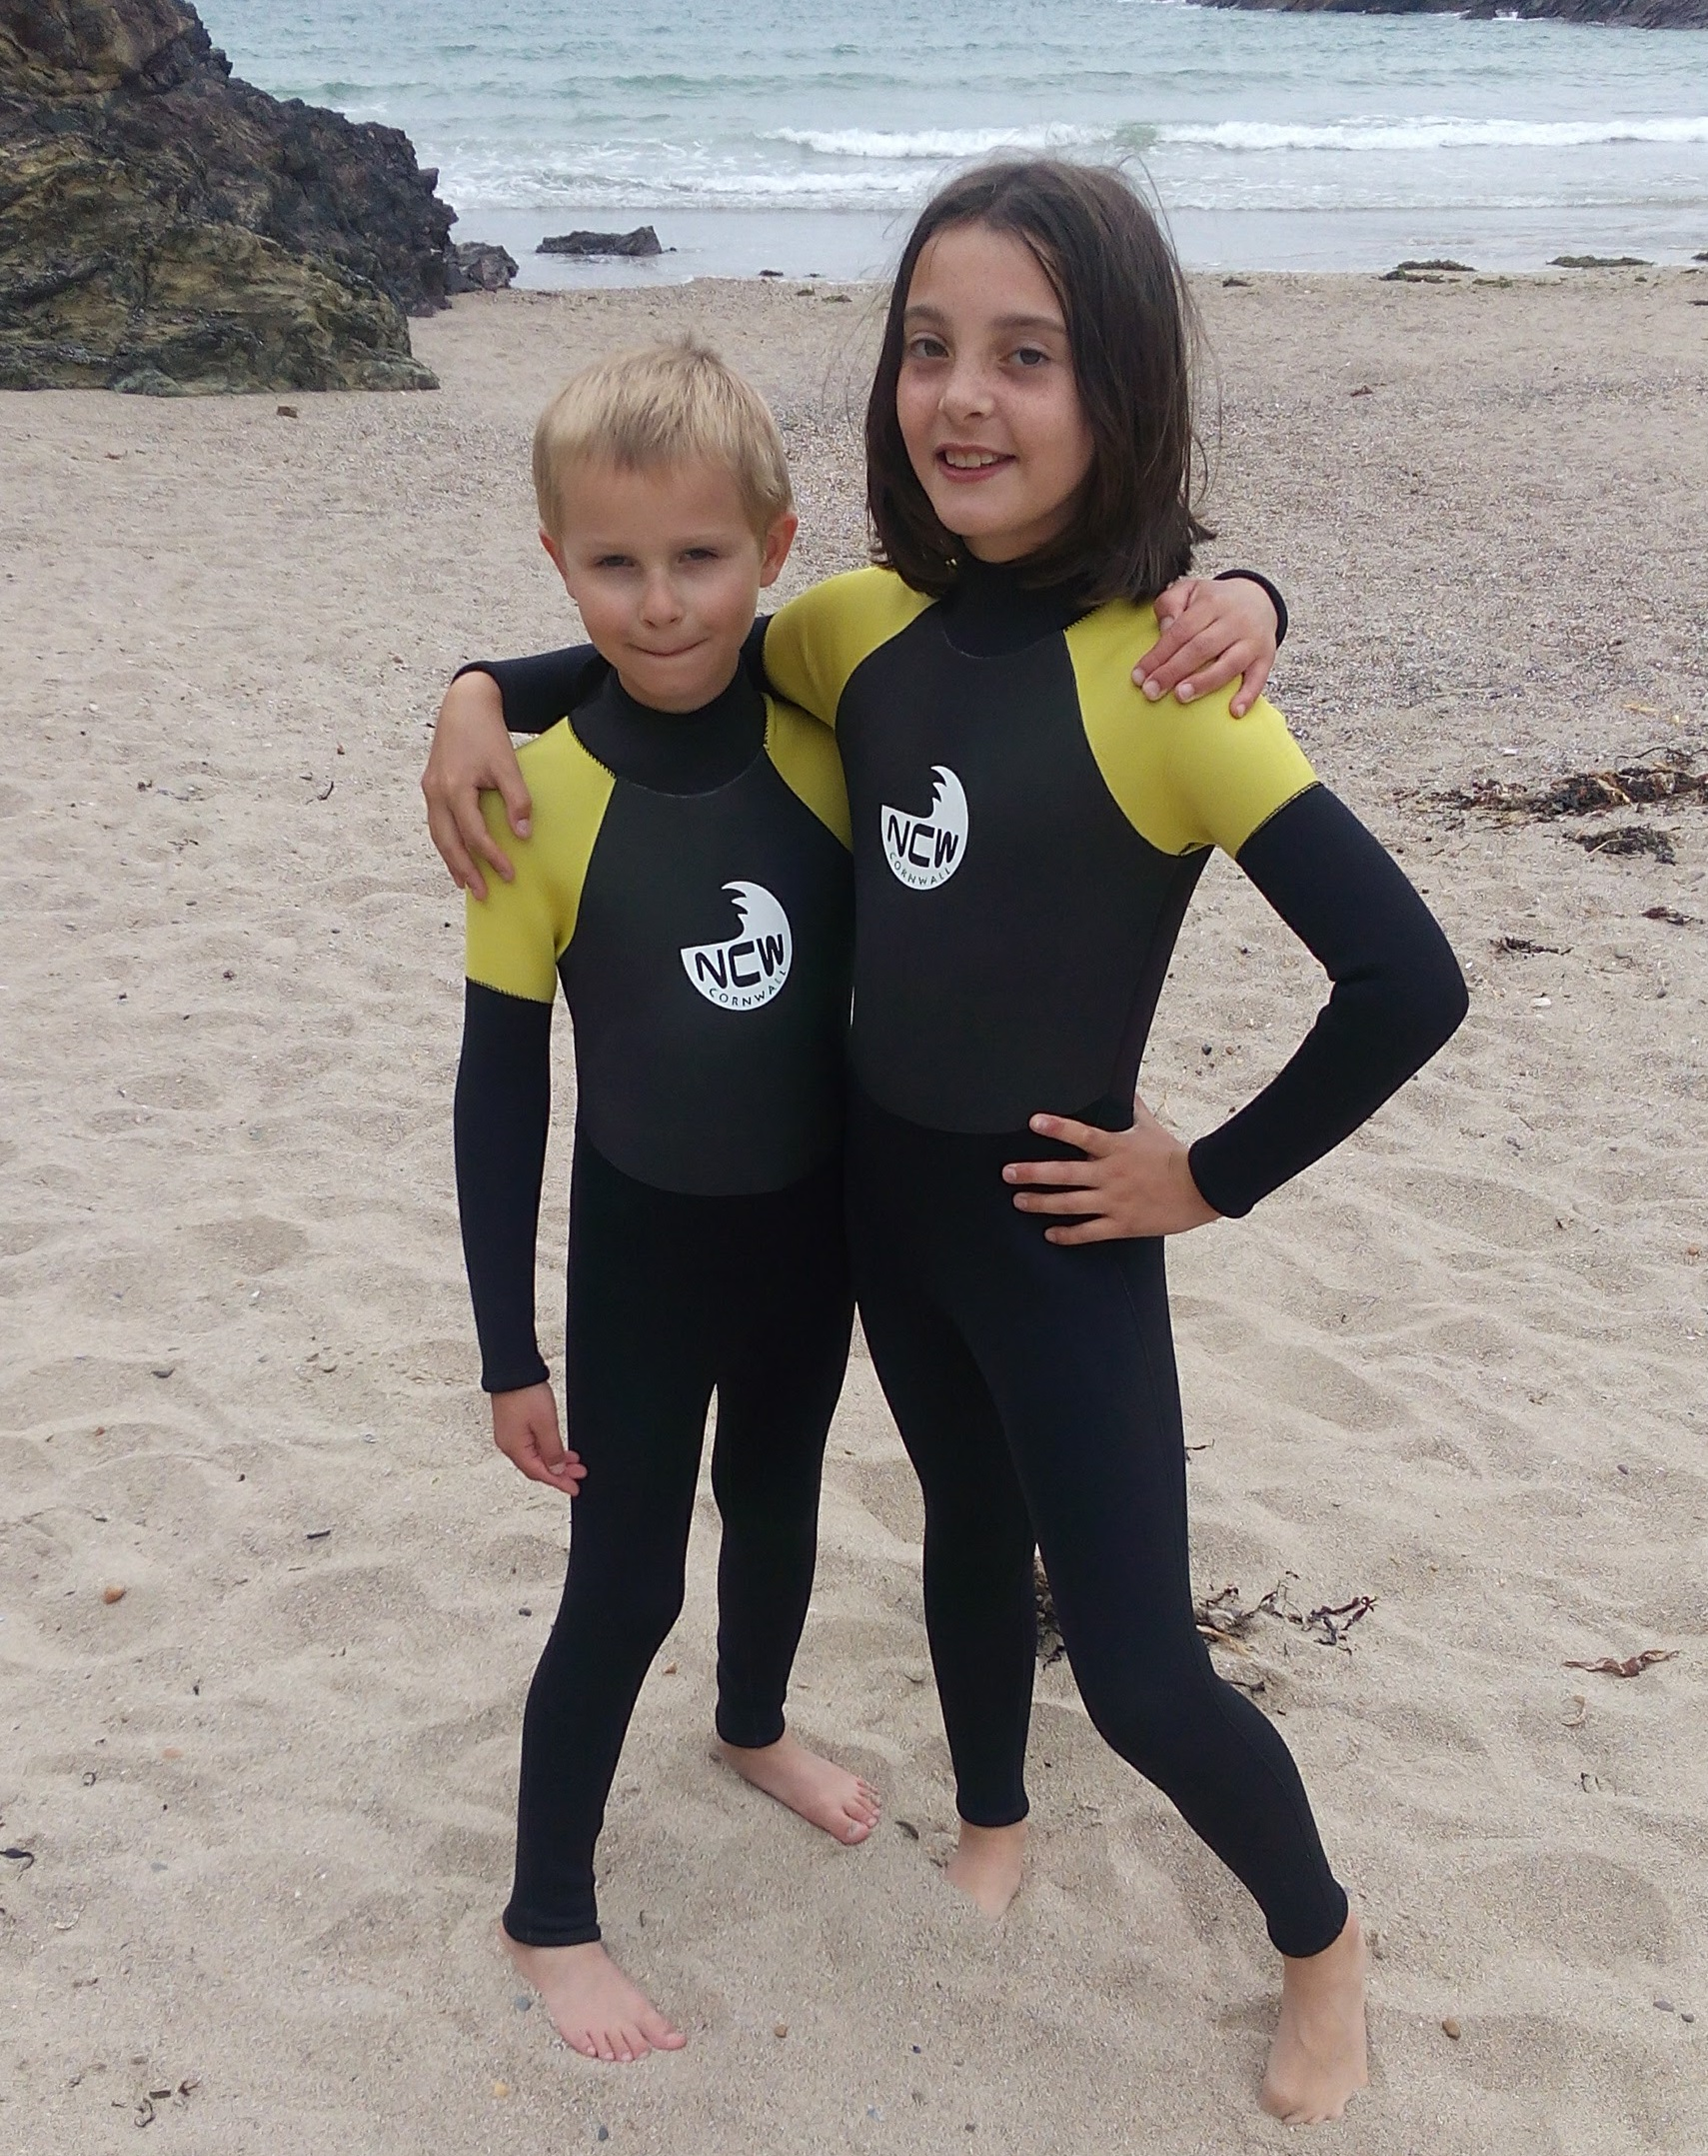 kids winter wetsuit. Full 5mm super stretch neoprene with GBS seams